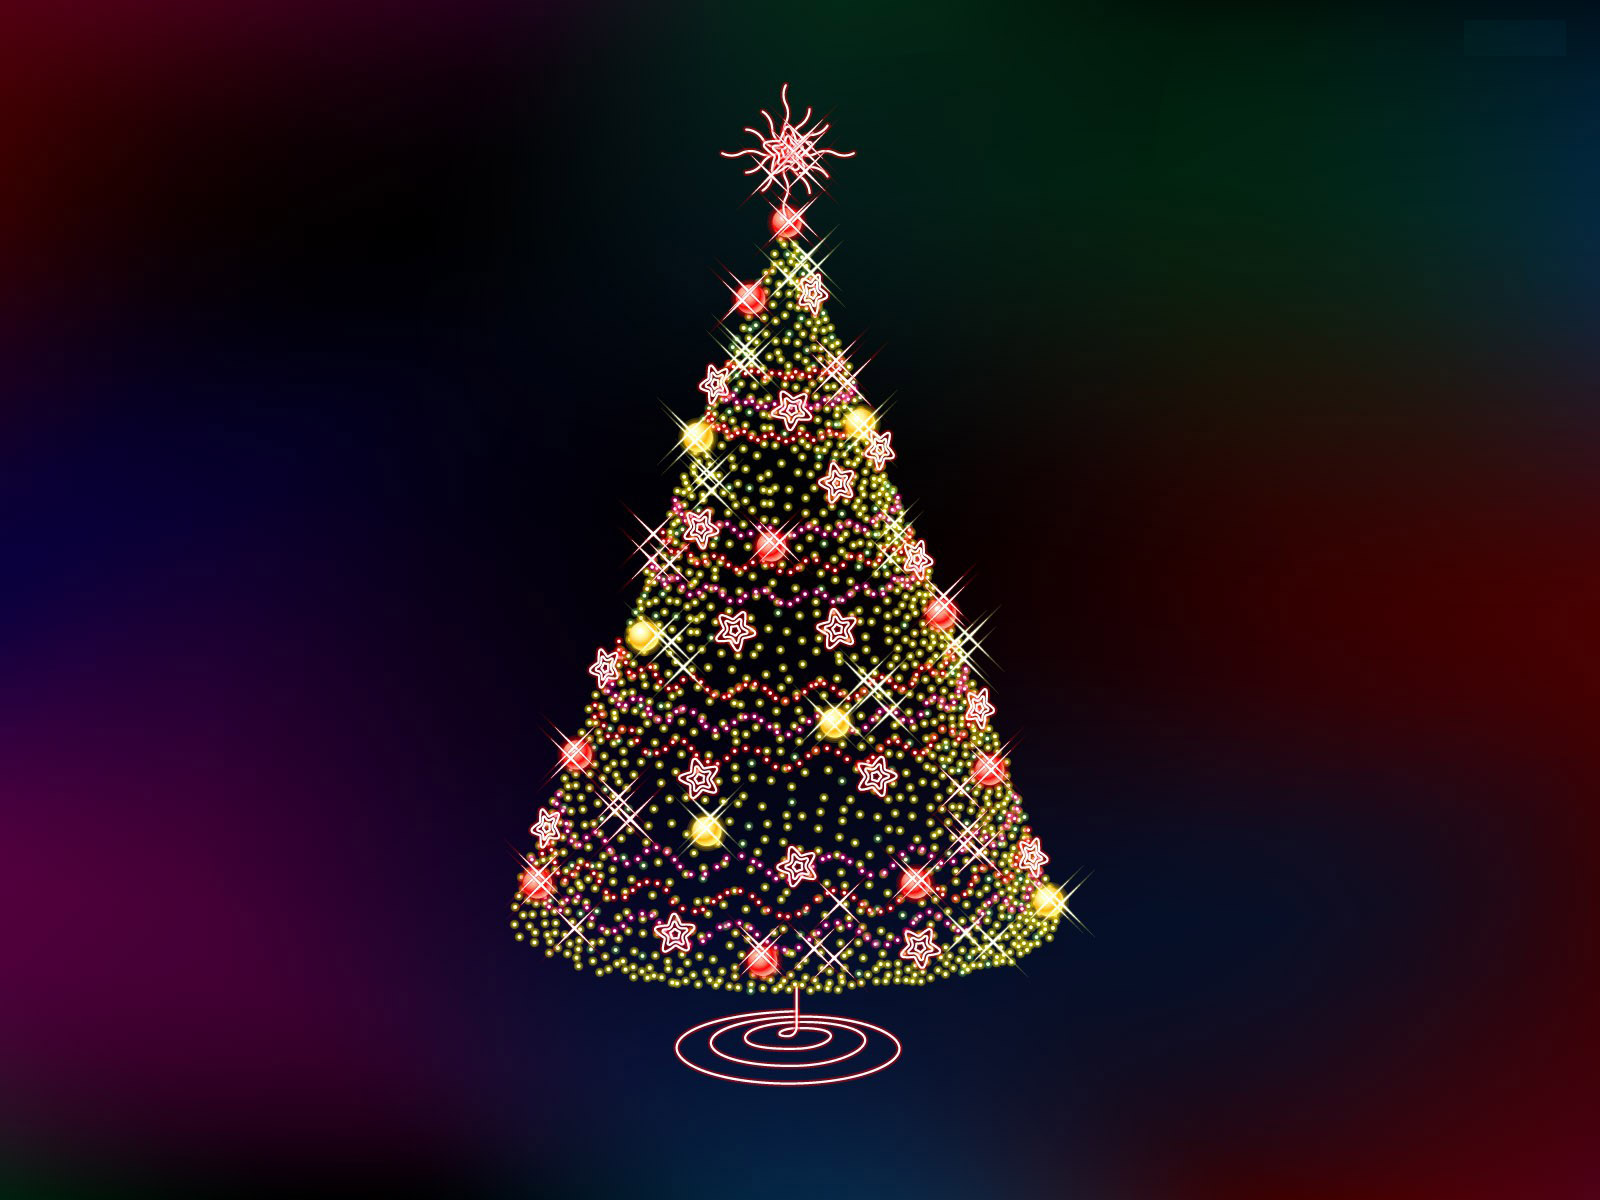 http://2.bp.blogspot.com/-Fe5fILXqSck/TujNTDfwp8I/AAAAAAAAFdA/lr8cNMs2BKE/s1600/Christmas_Wallpaper_Tree_Lights_Night.jpg